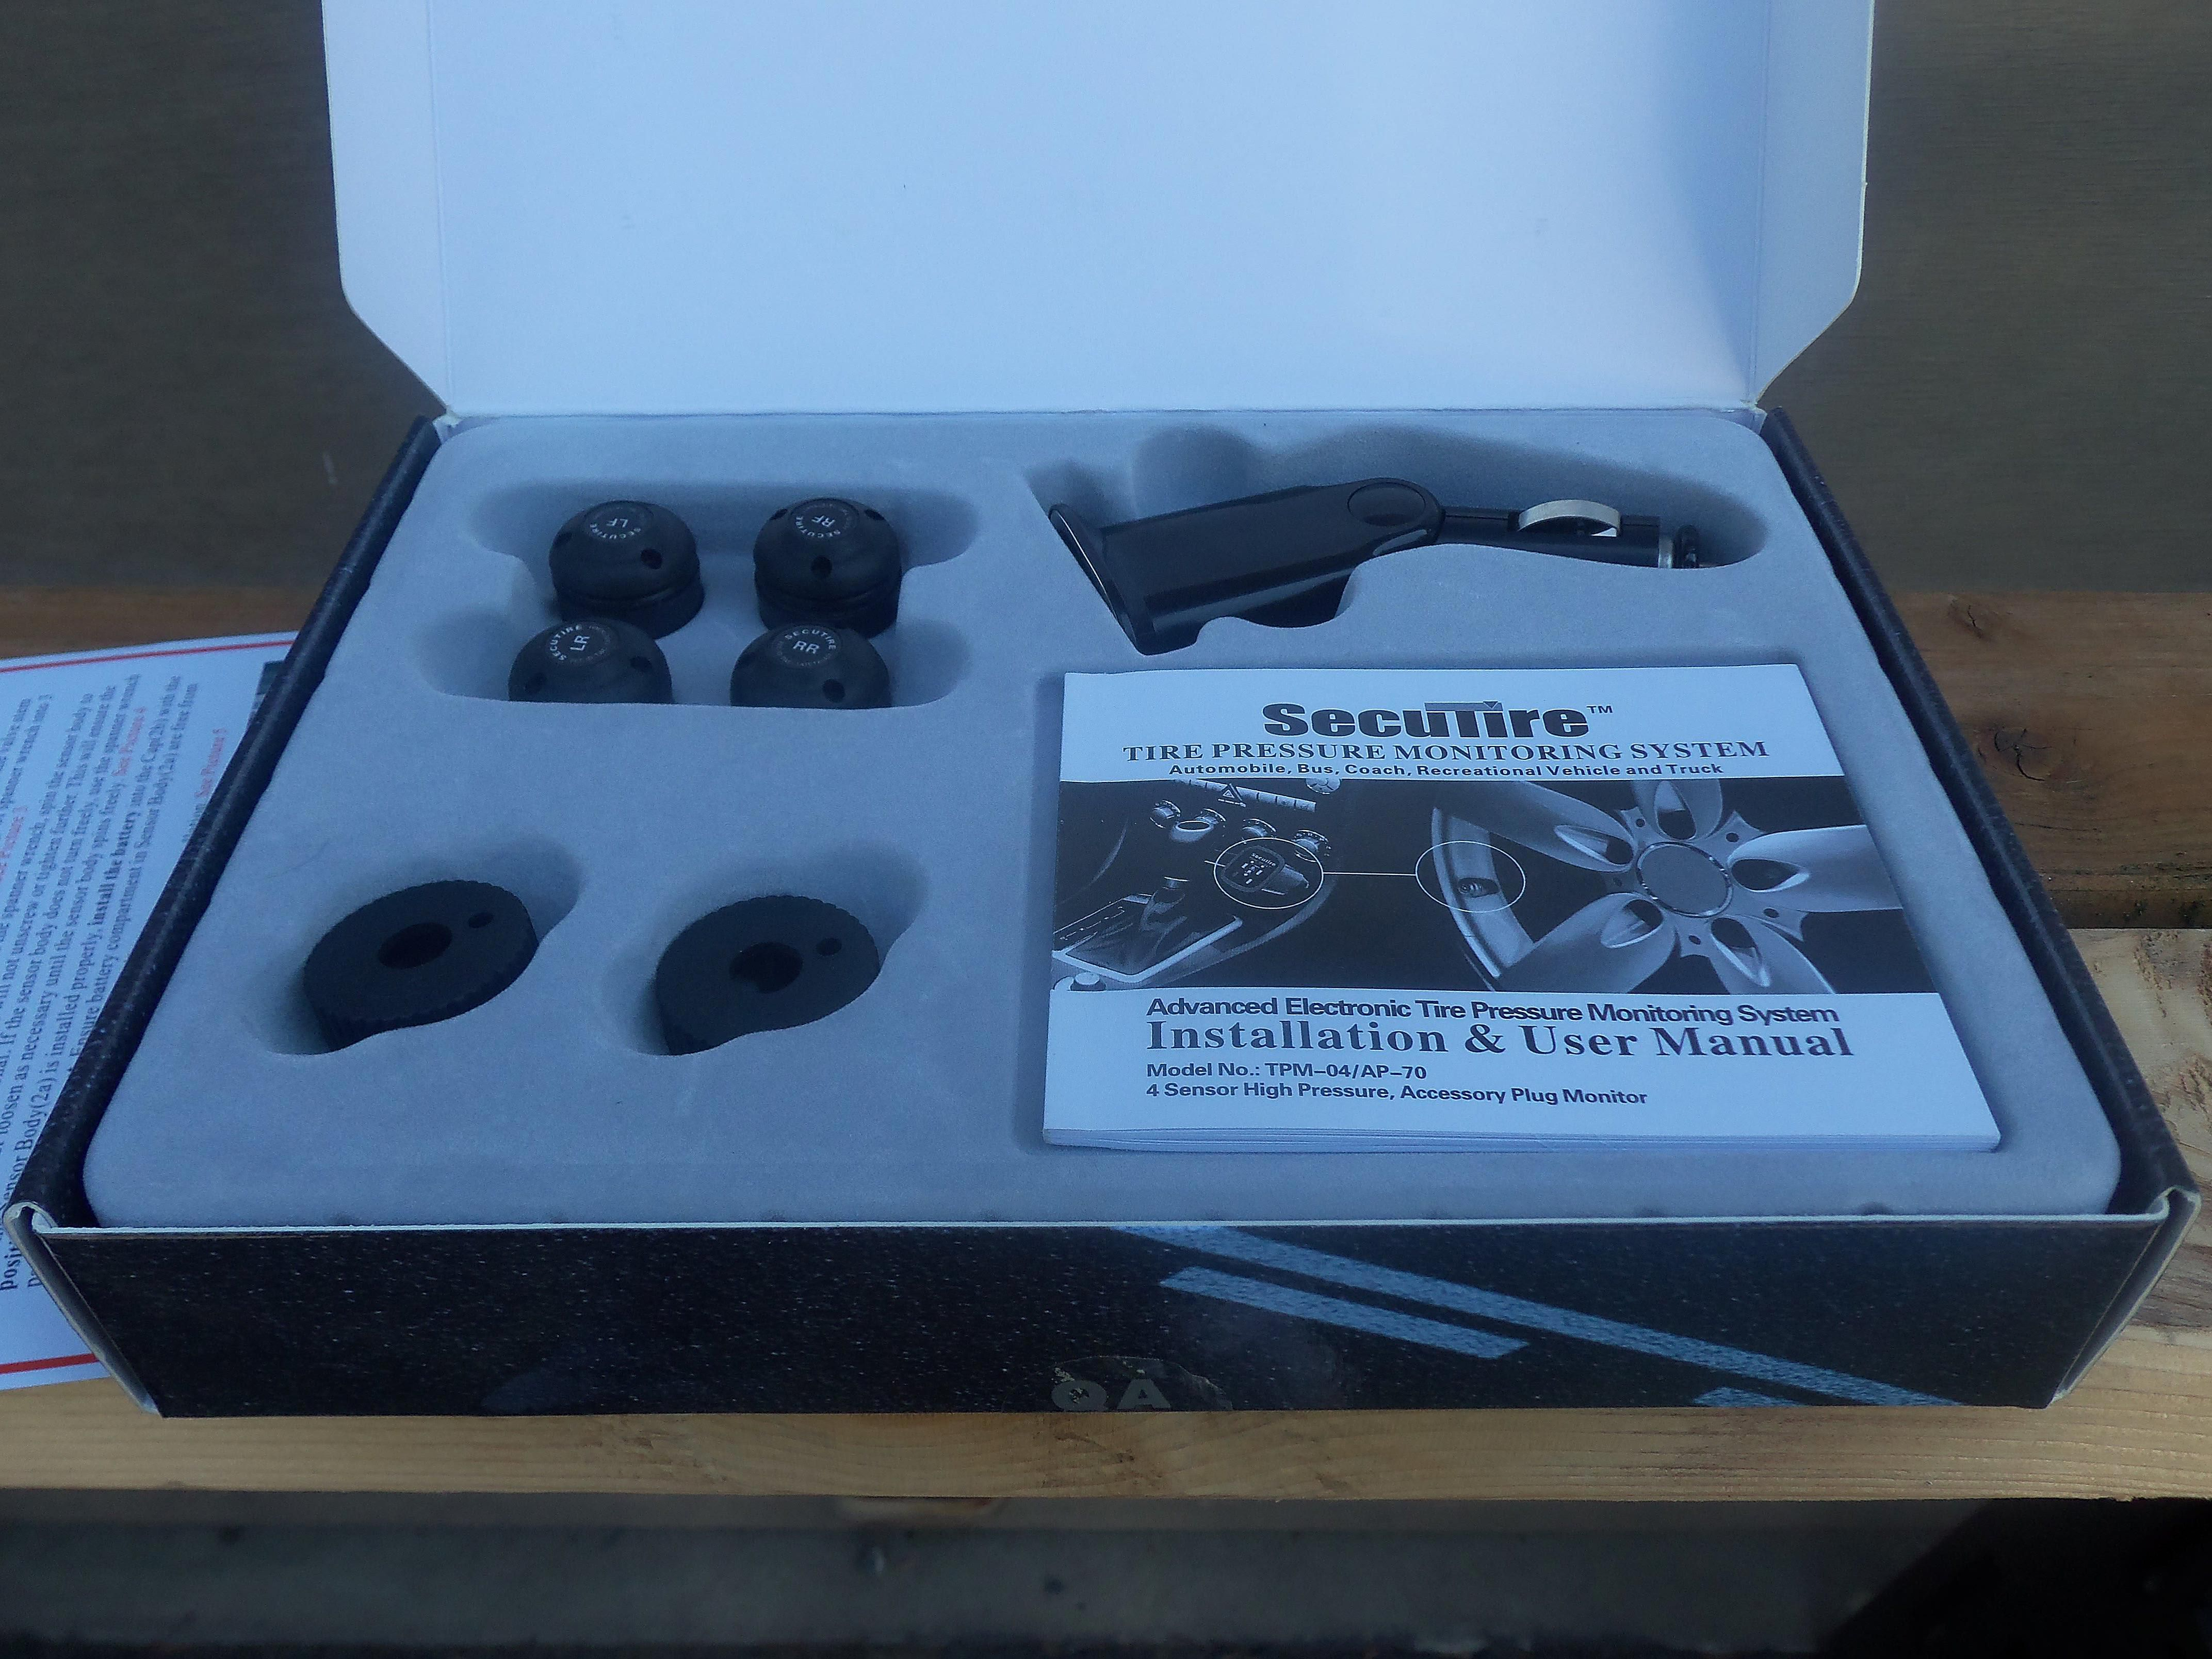 Secutire Pressure Monitor System Review